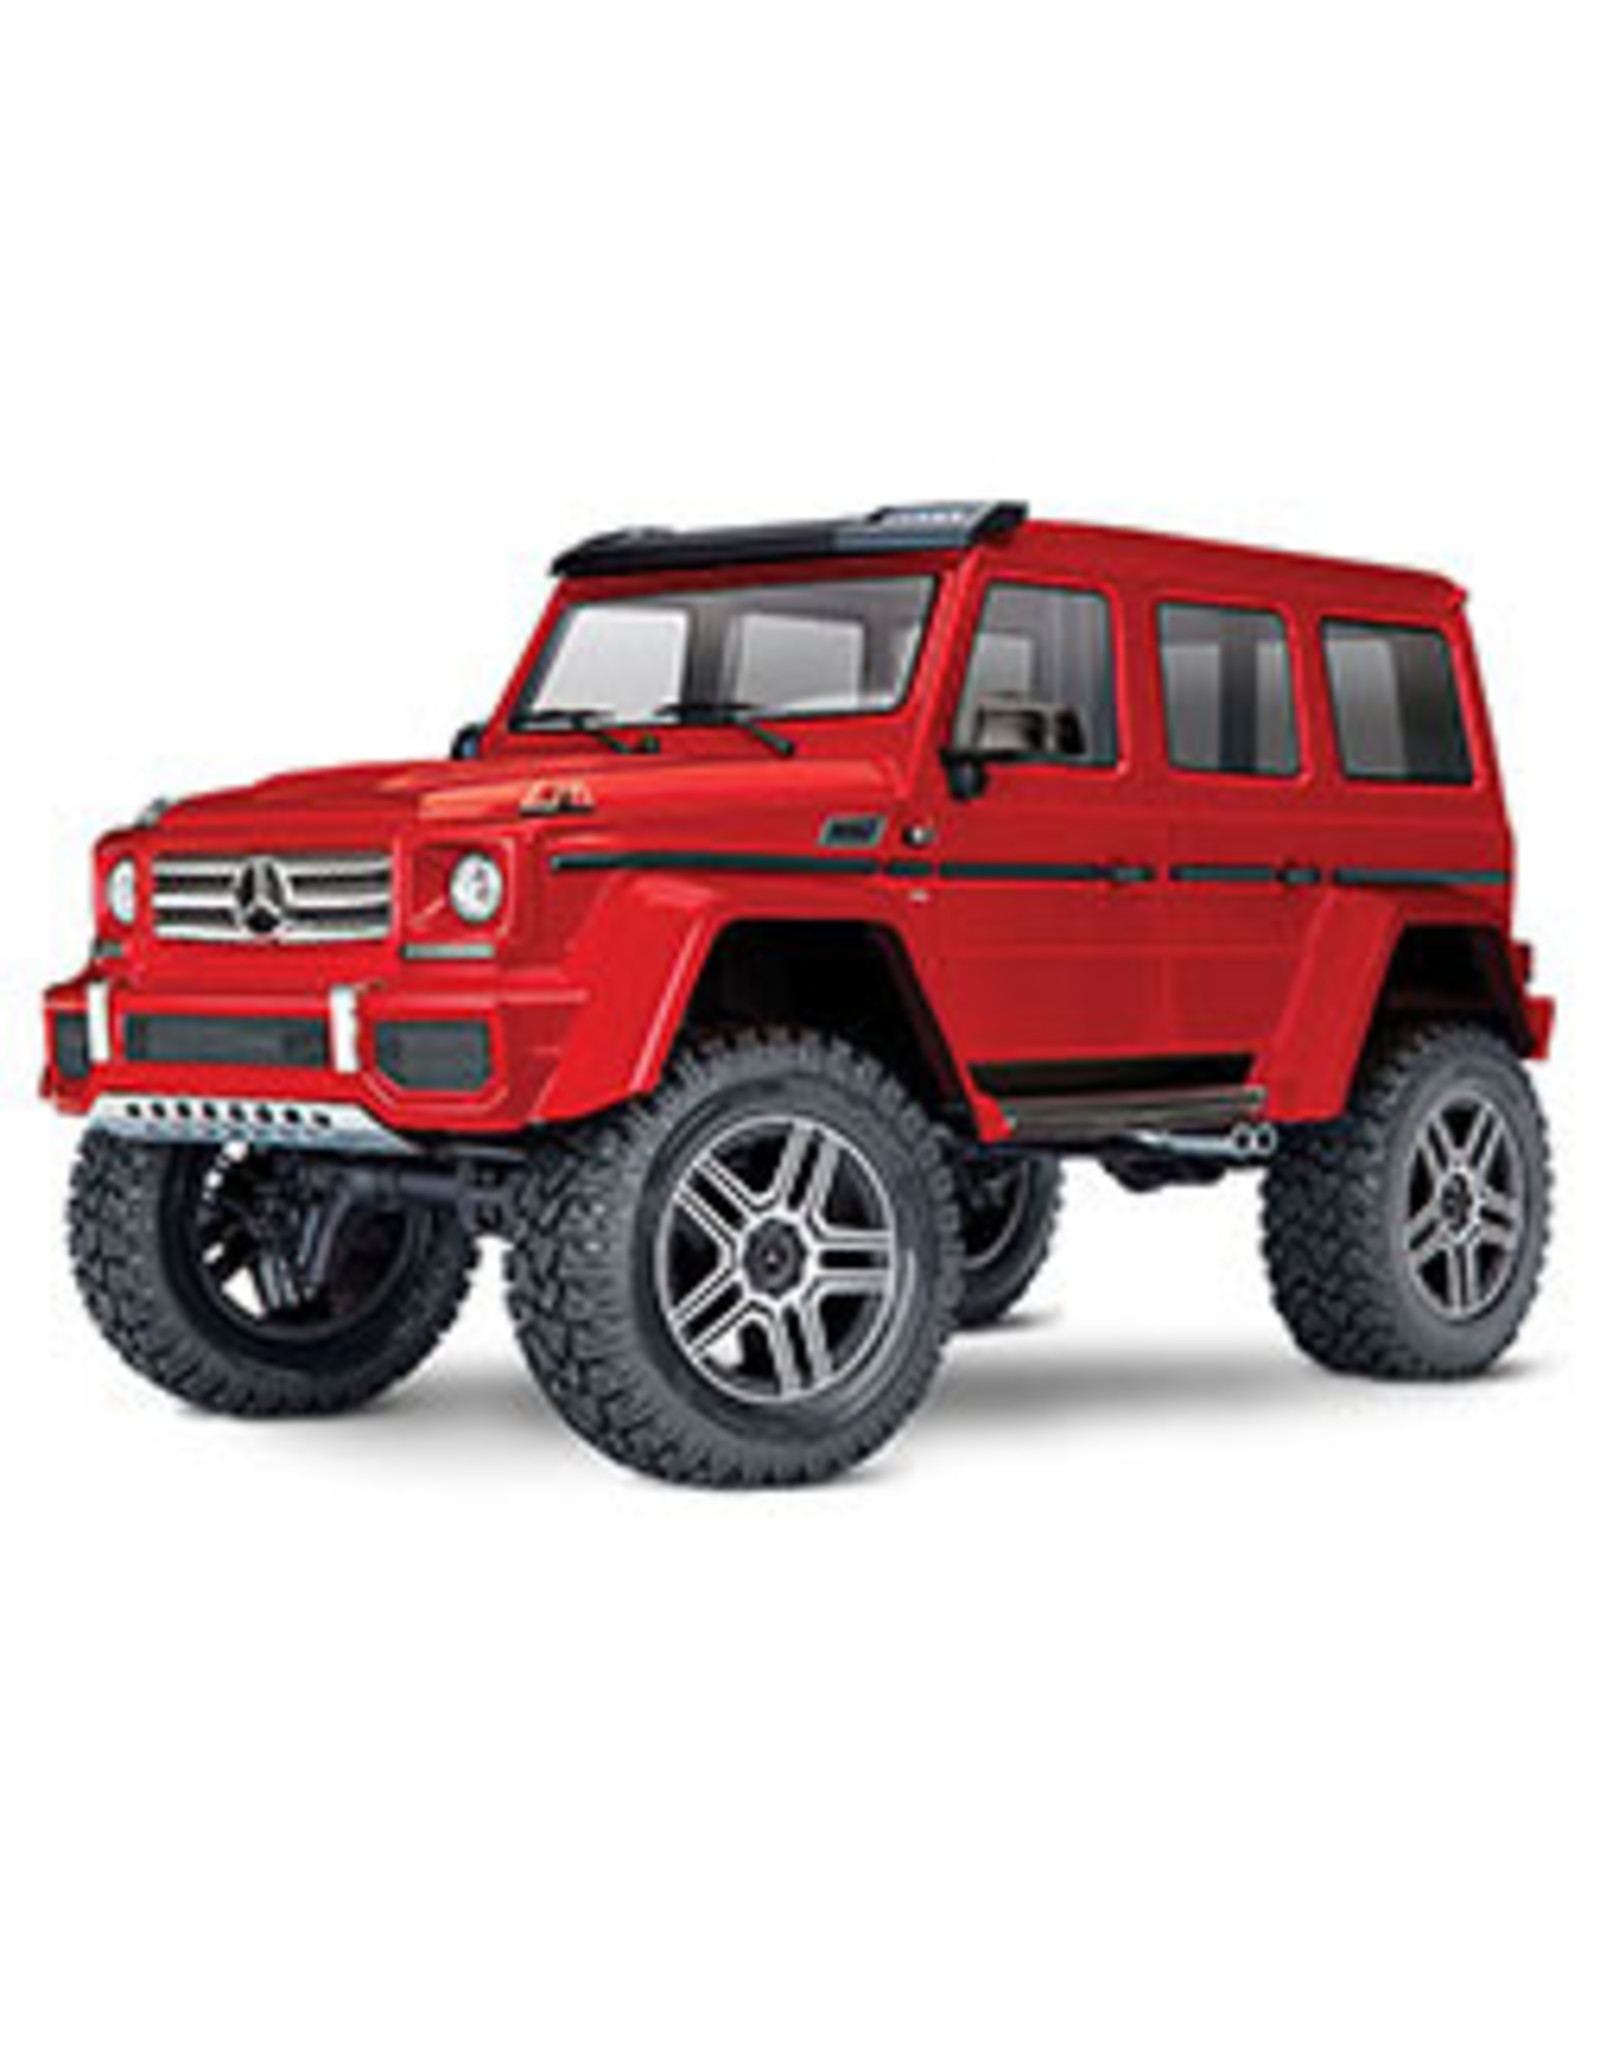 Traxxas 1/10 TRX-4 G 500 4X4 (RED): No Battery, No Charger (TRA82096-4)